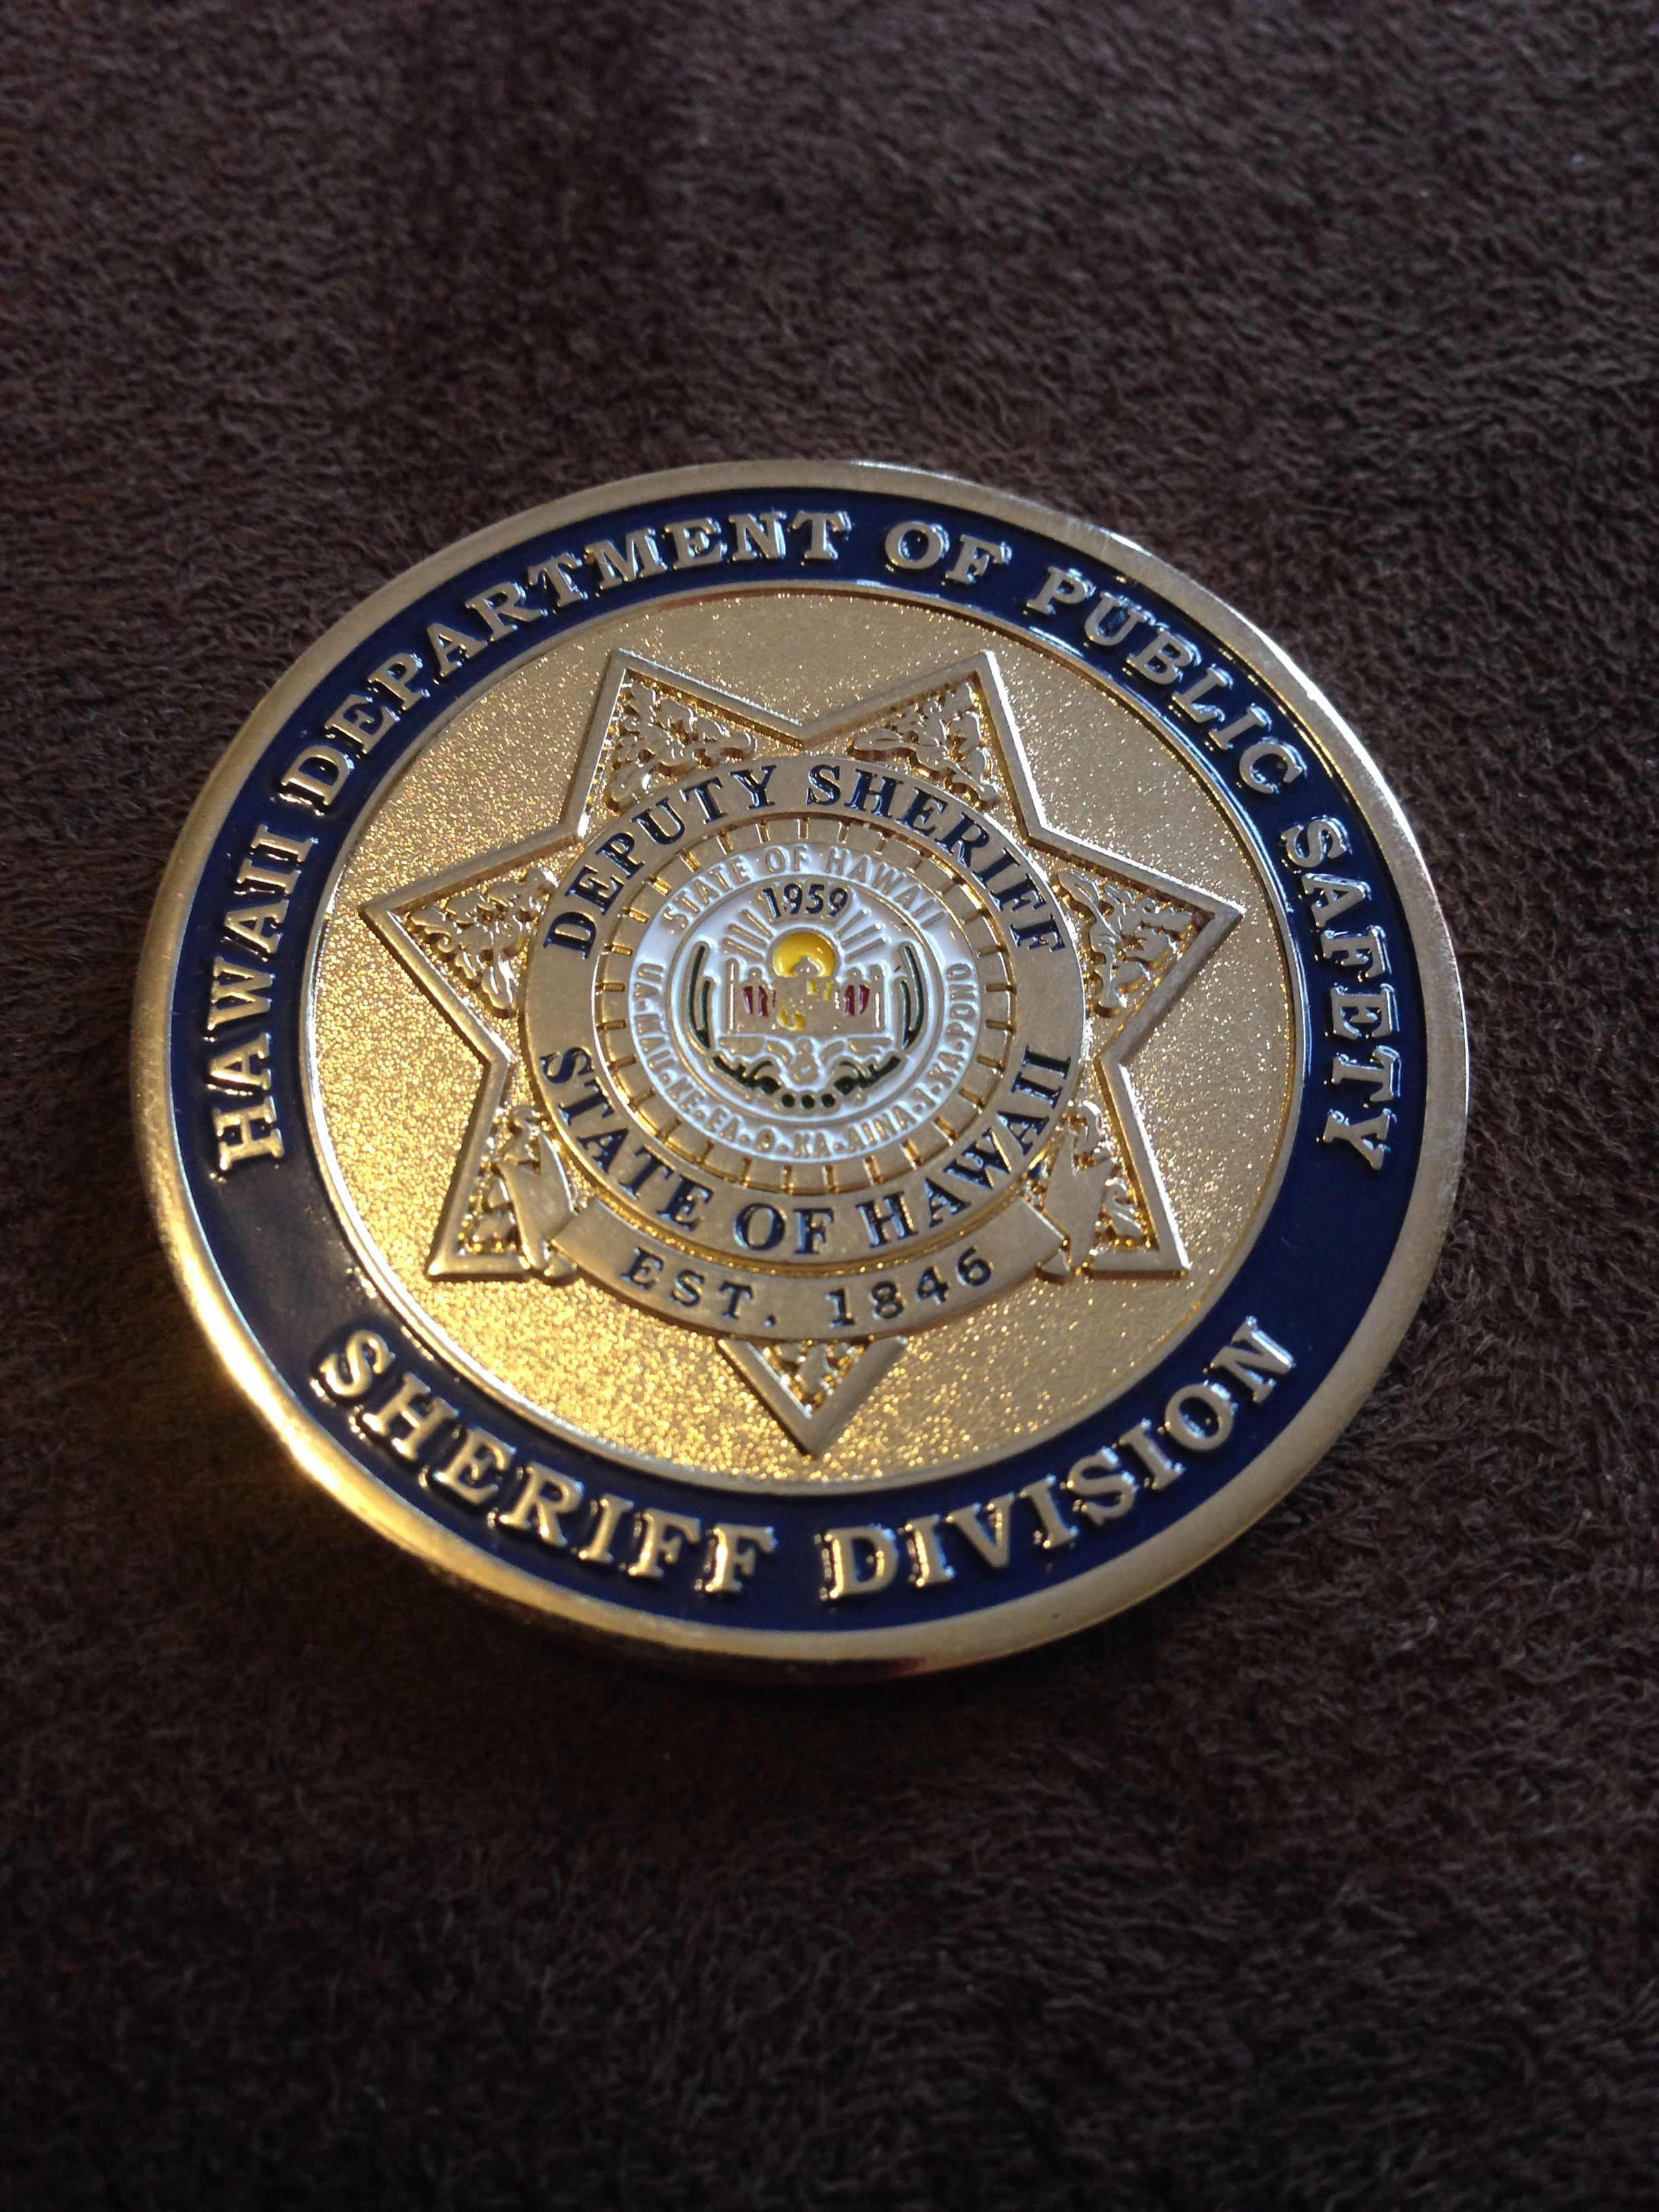 Hawaii Department of Public Safety Sheriff's Division